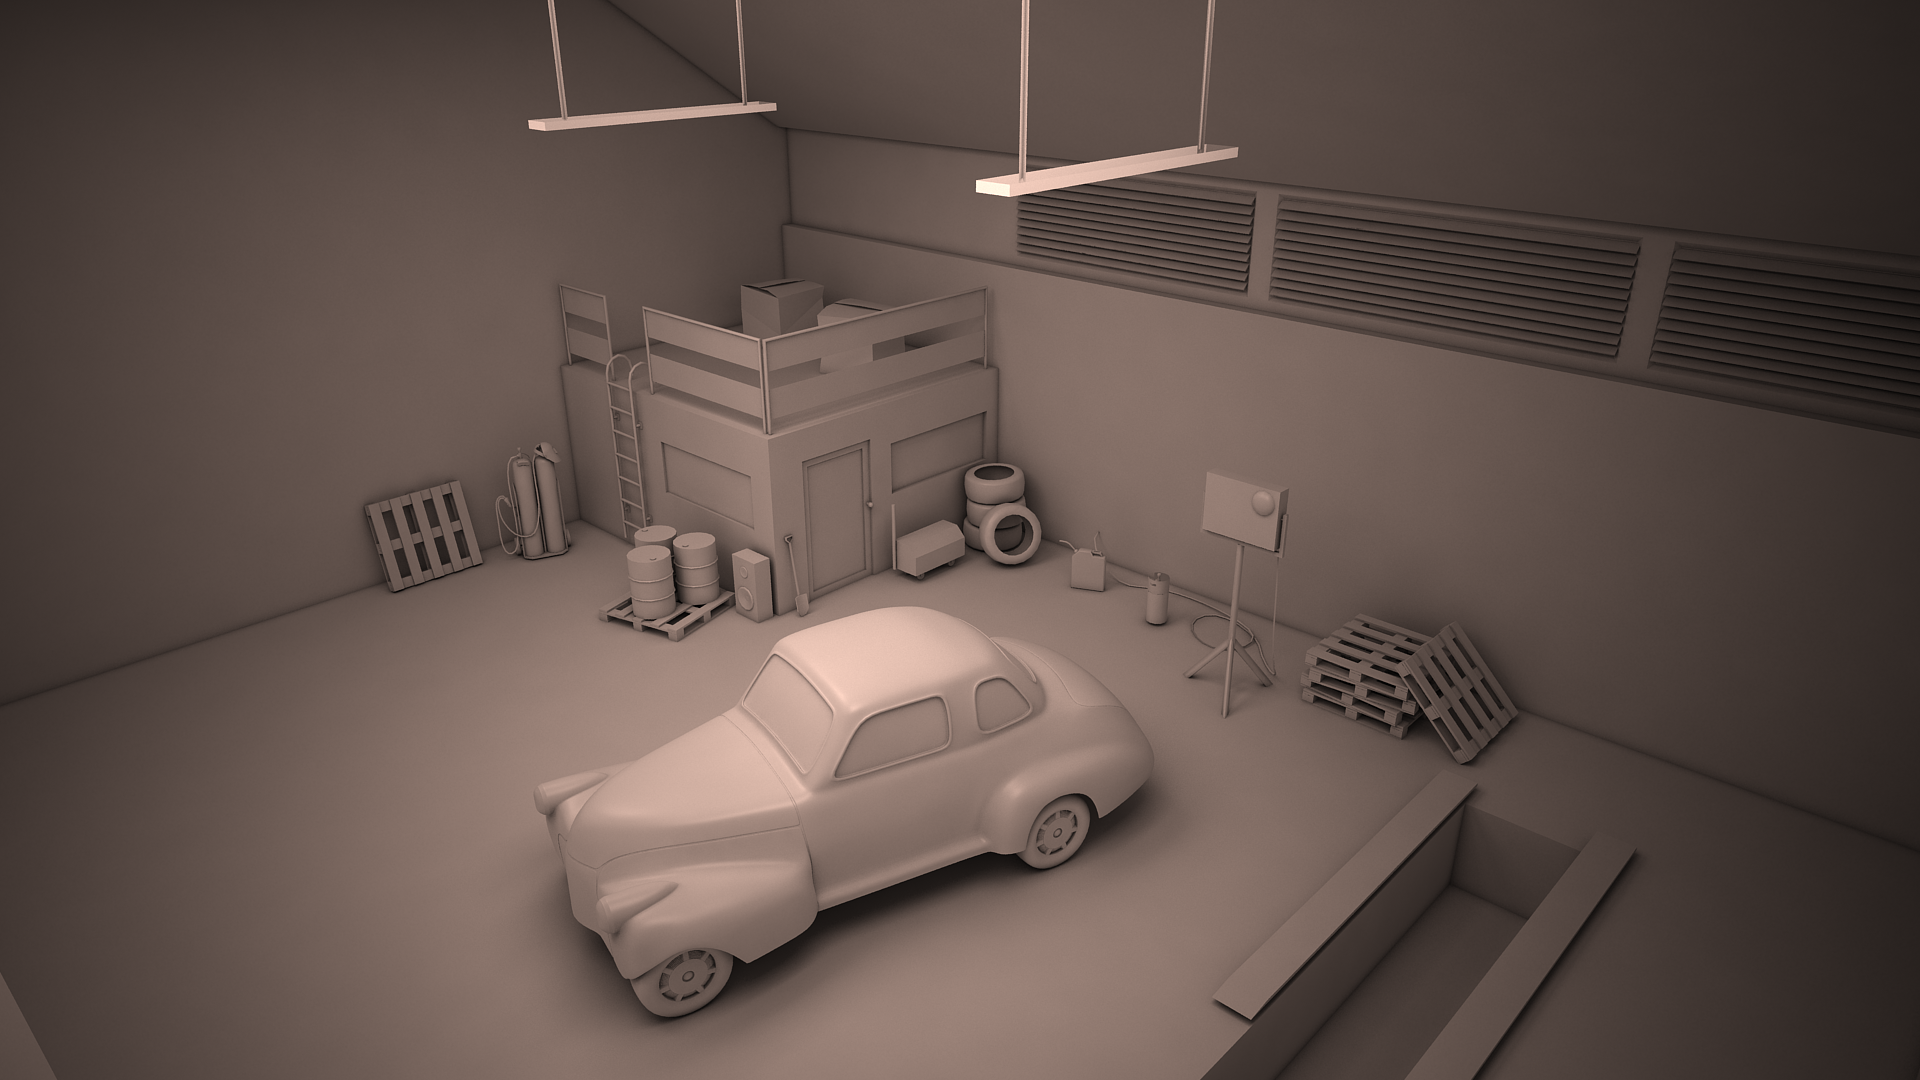 3d wip garage scene by y50p on deviantart